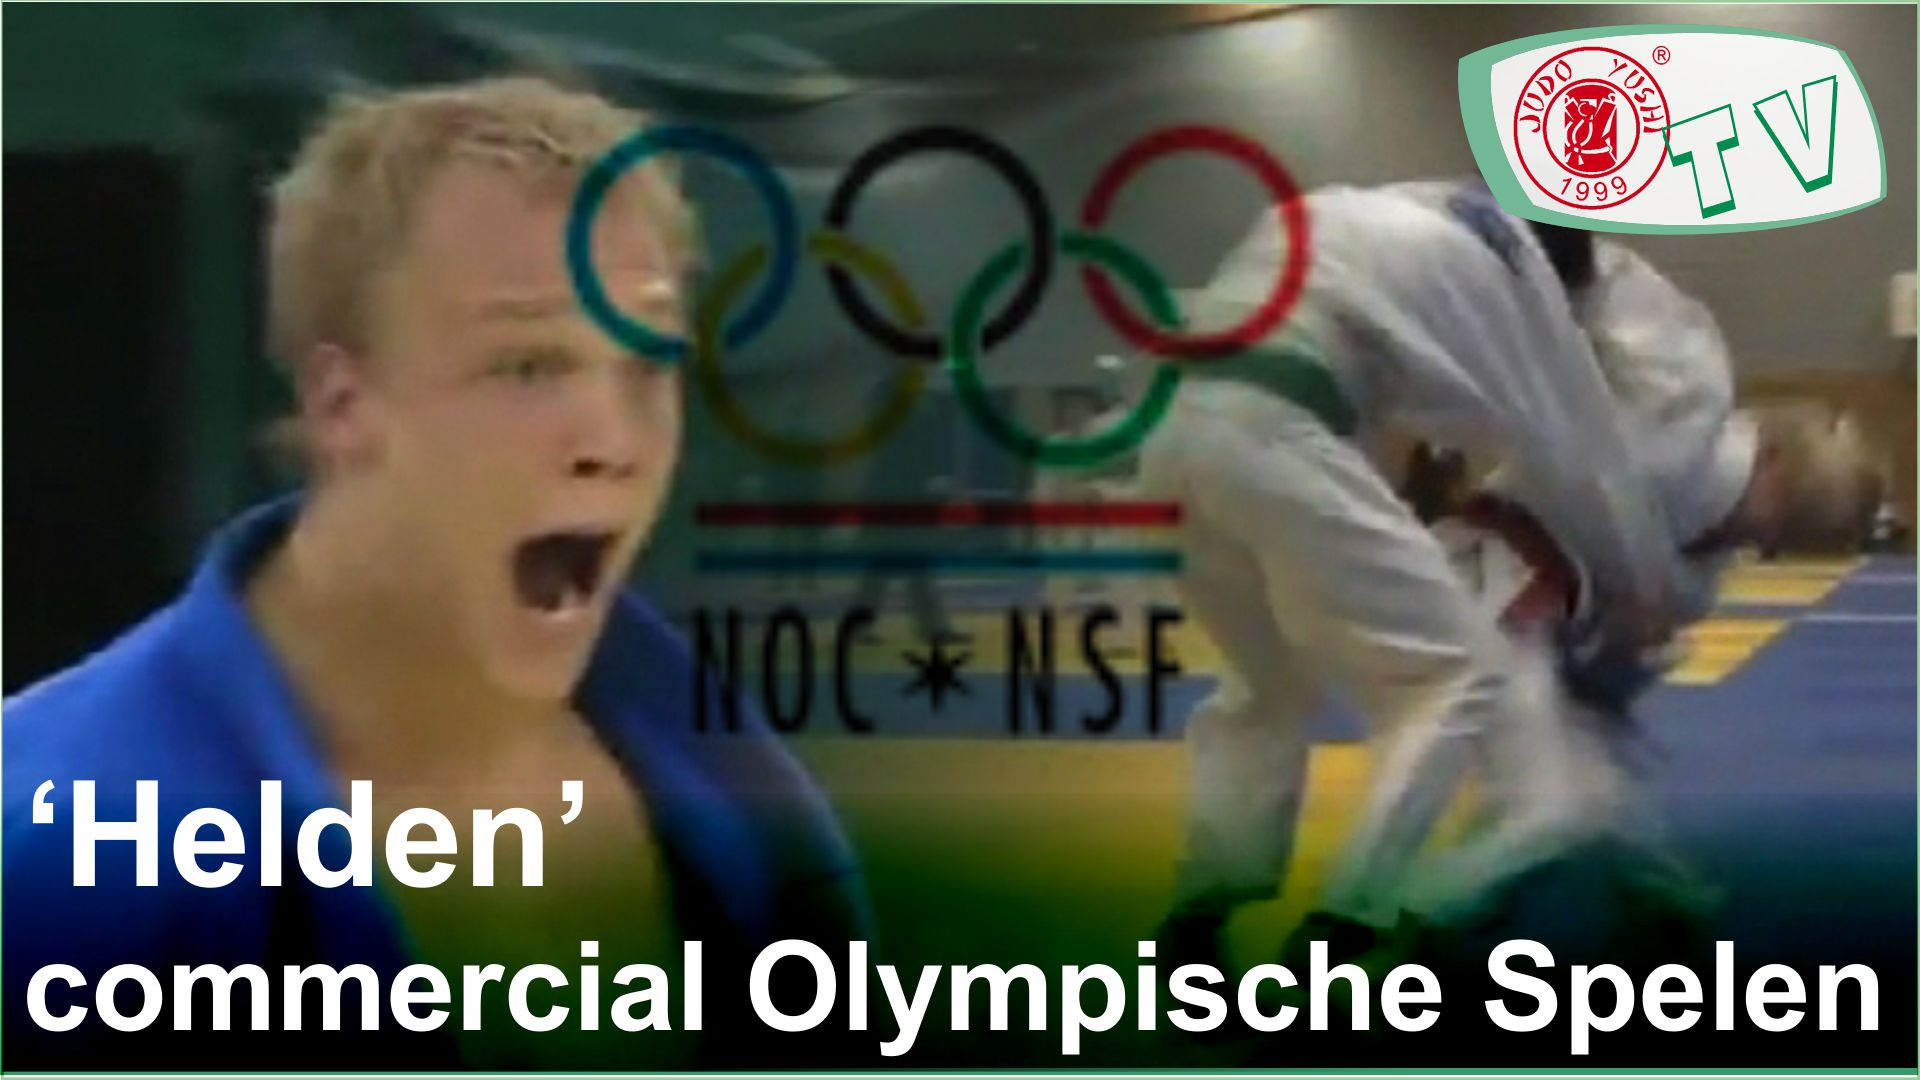 Commercial 'Heroes', NOC-NSF Olympics 2012